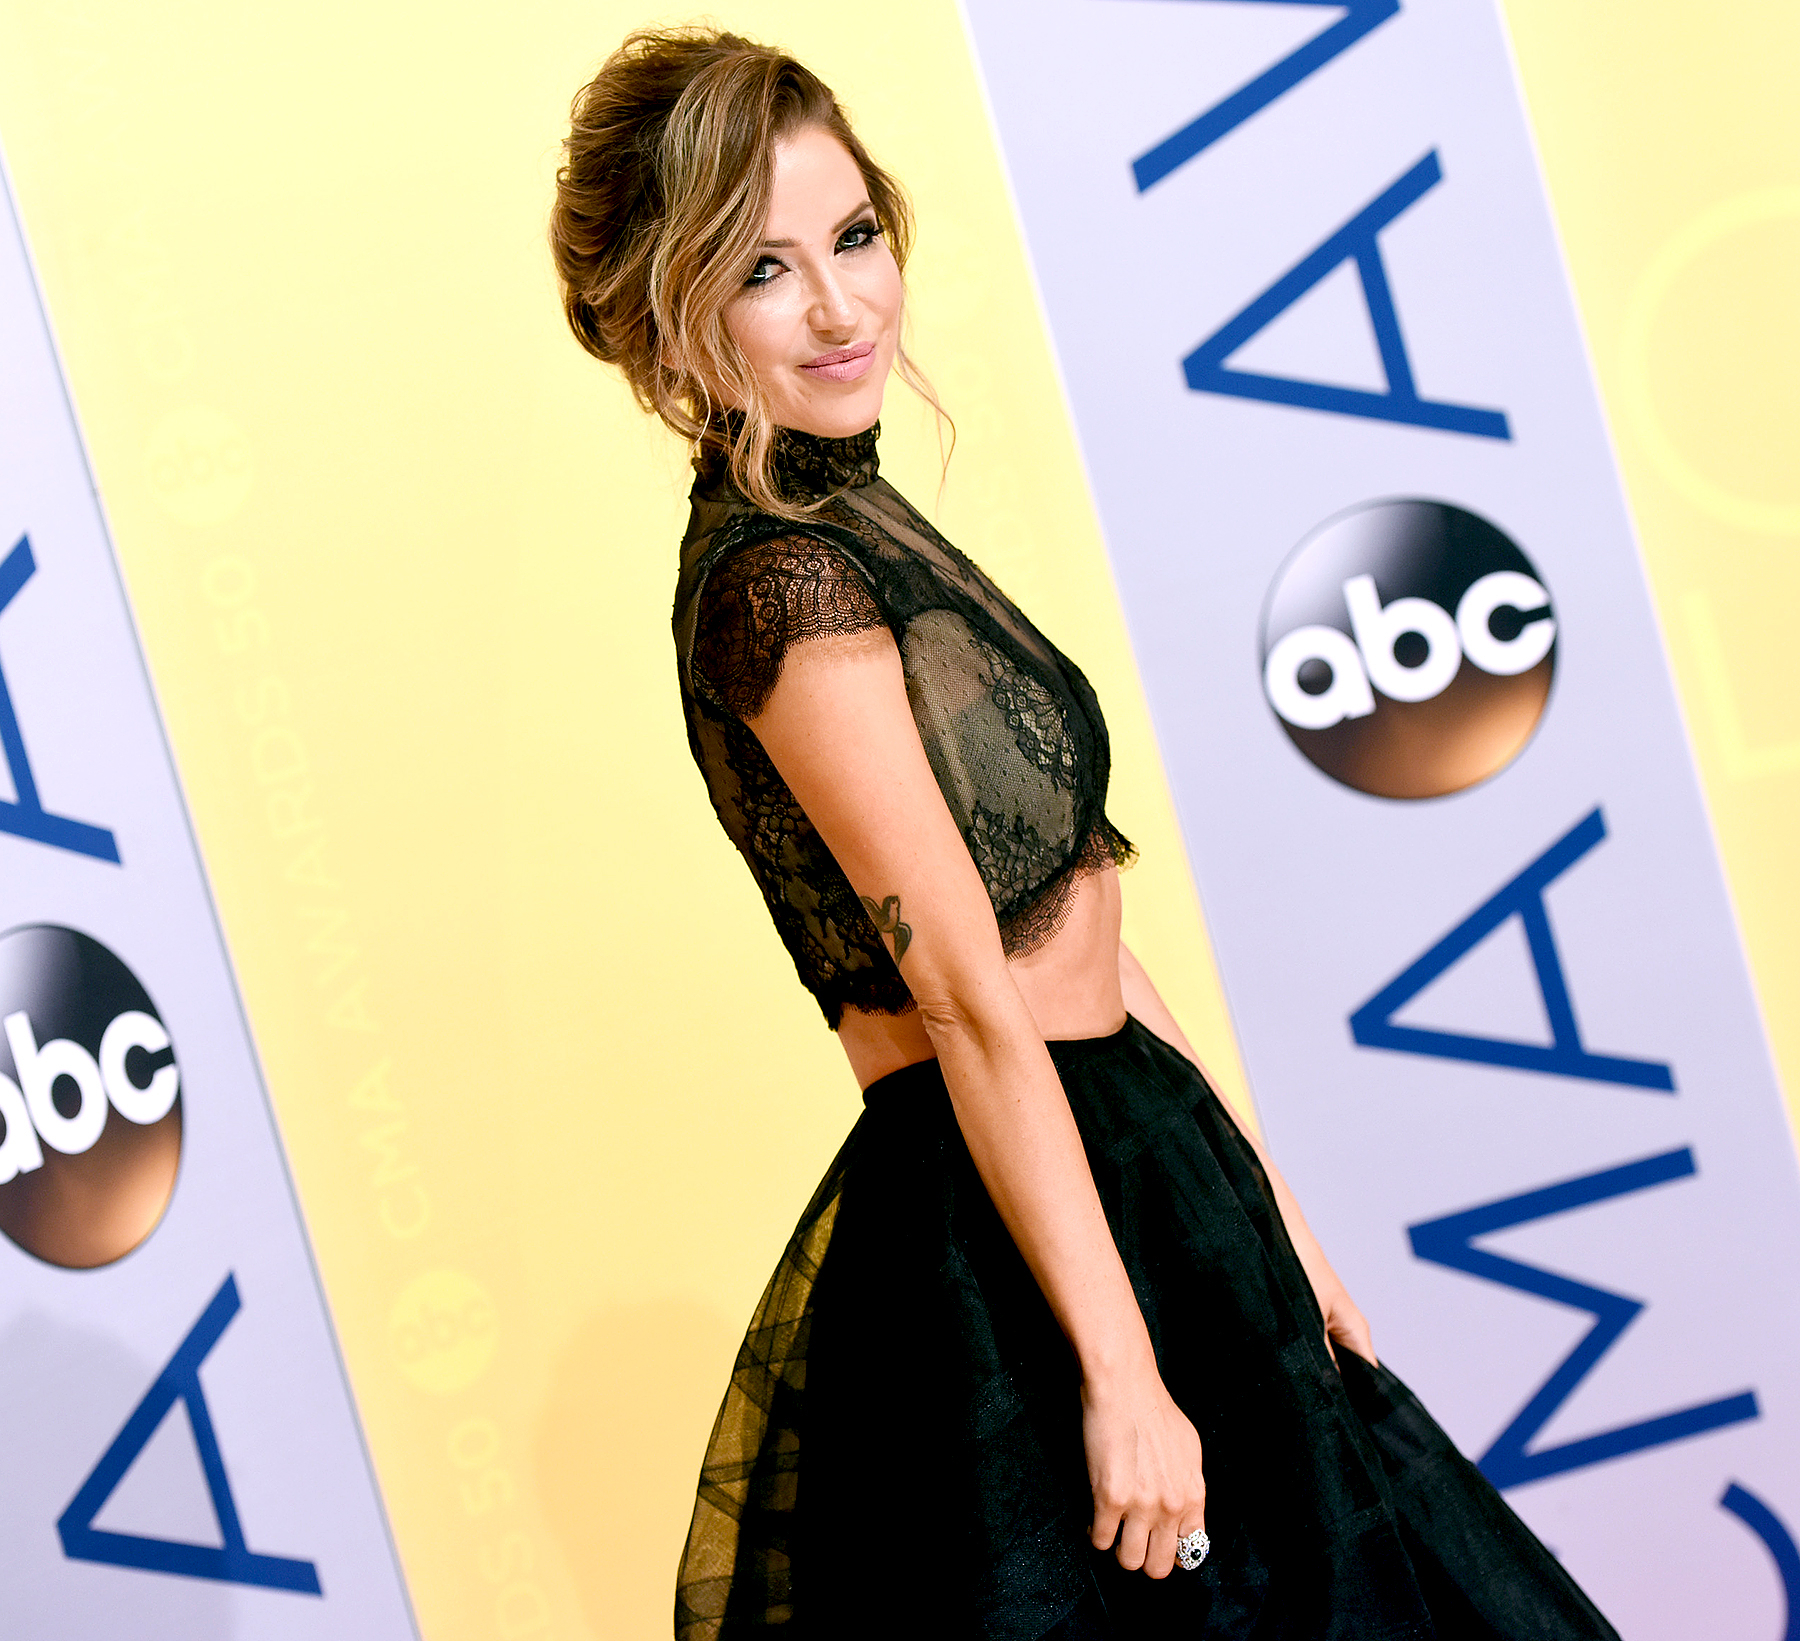 Kaitlyn Bristowe attends the 50th annual CMA Awards at the Bridgestone Arena on November 2, 2016 in Nashville, Tennessee.